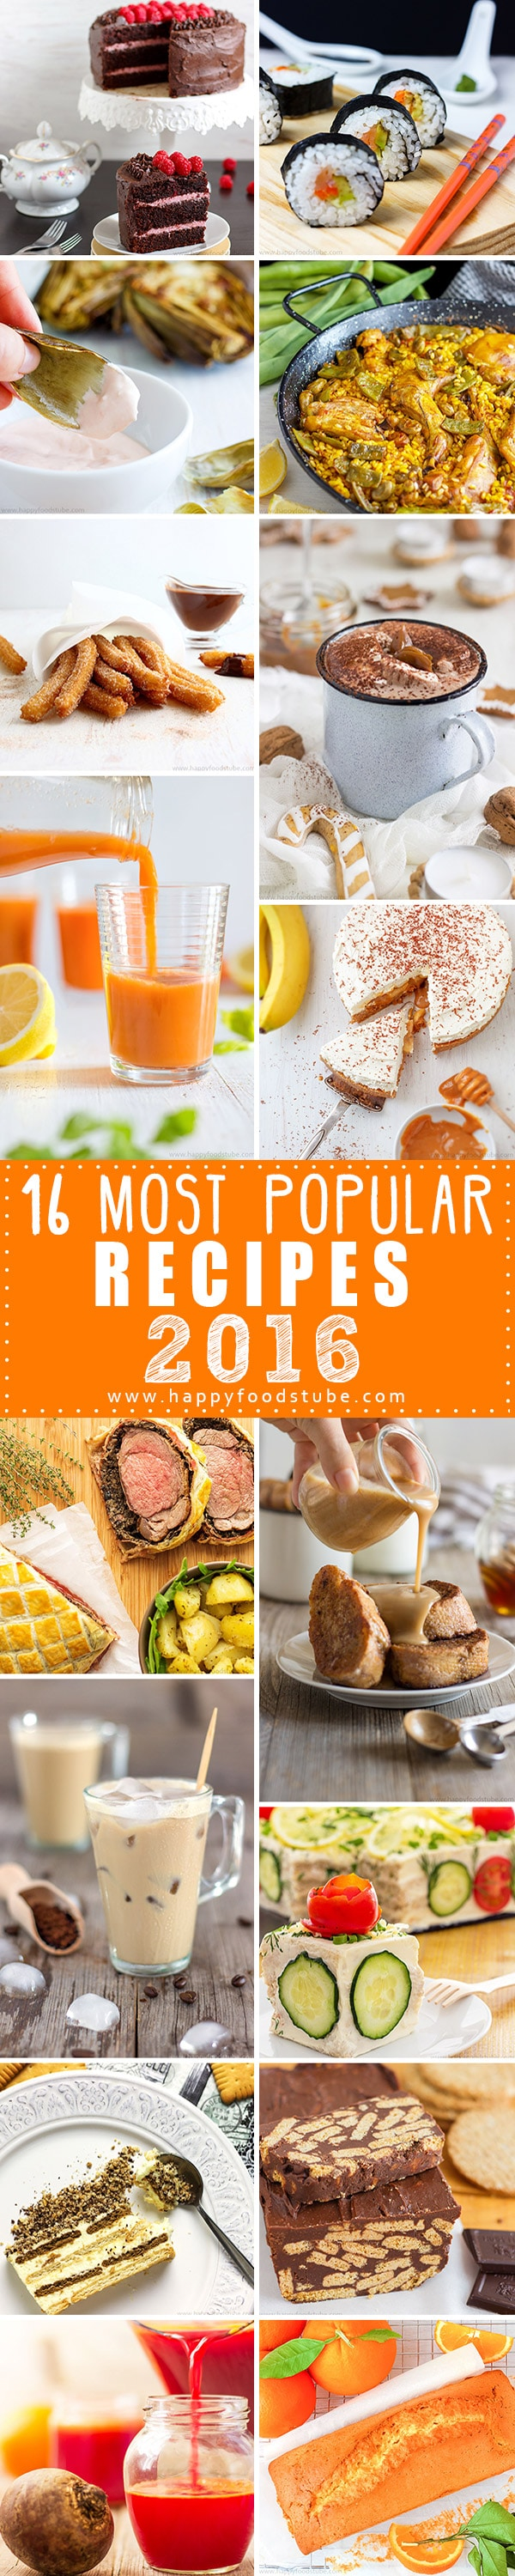 Check out our 16 most popular recipes of this year! Homemade dessert recipes were the ones you loved most in 2016!   happyfoodstube.com